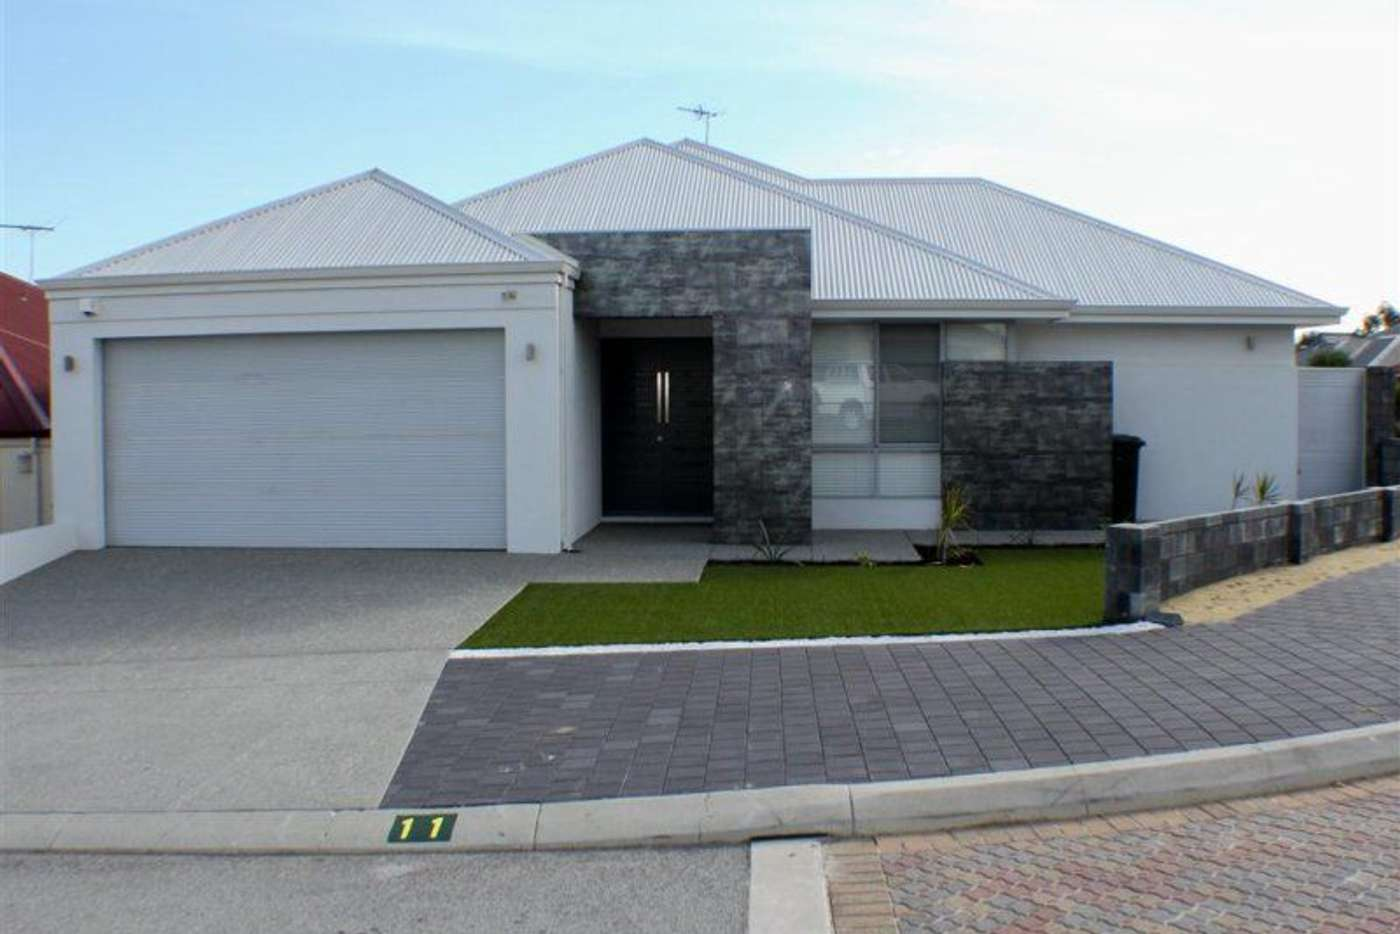 Main view of Homely house listing, 11 Cavan Way, Darch WA 6065